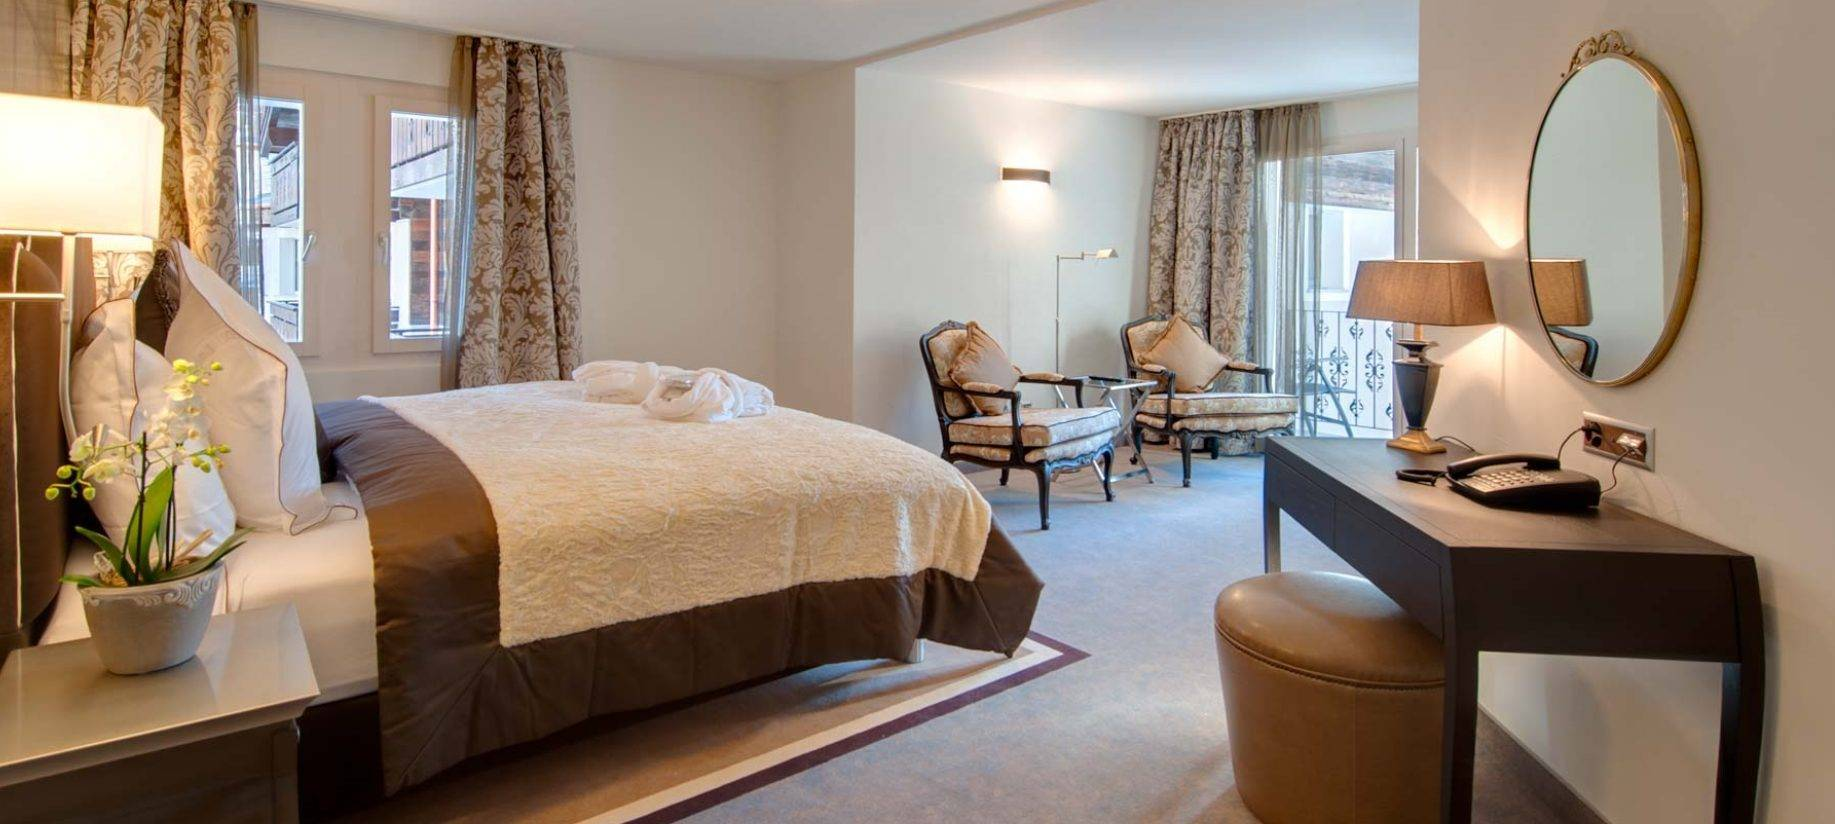 Superior double room in Schloss Hotel